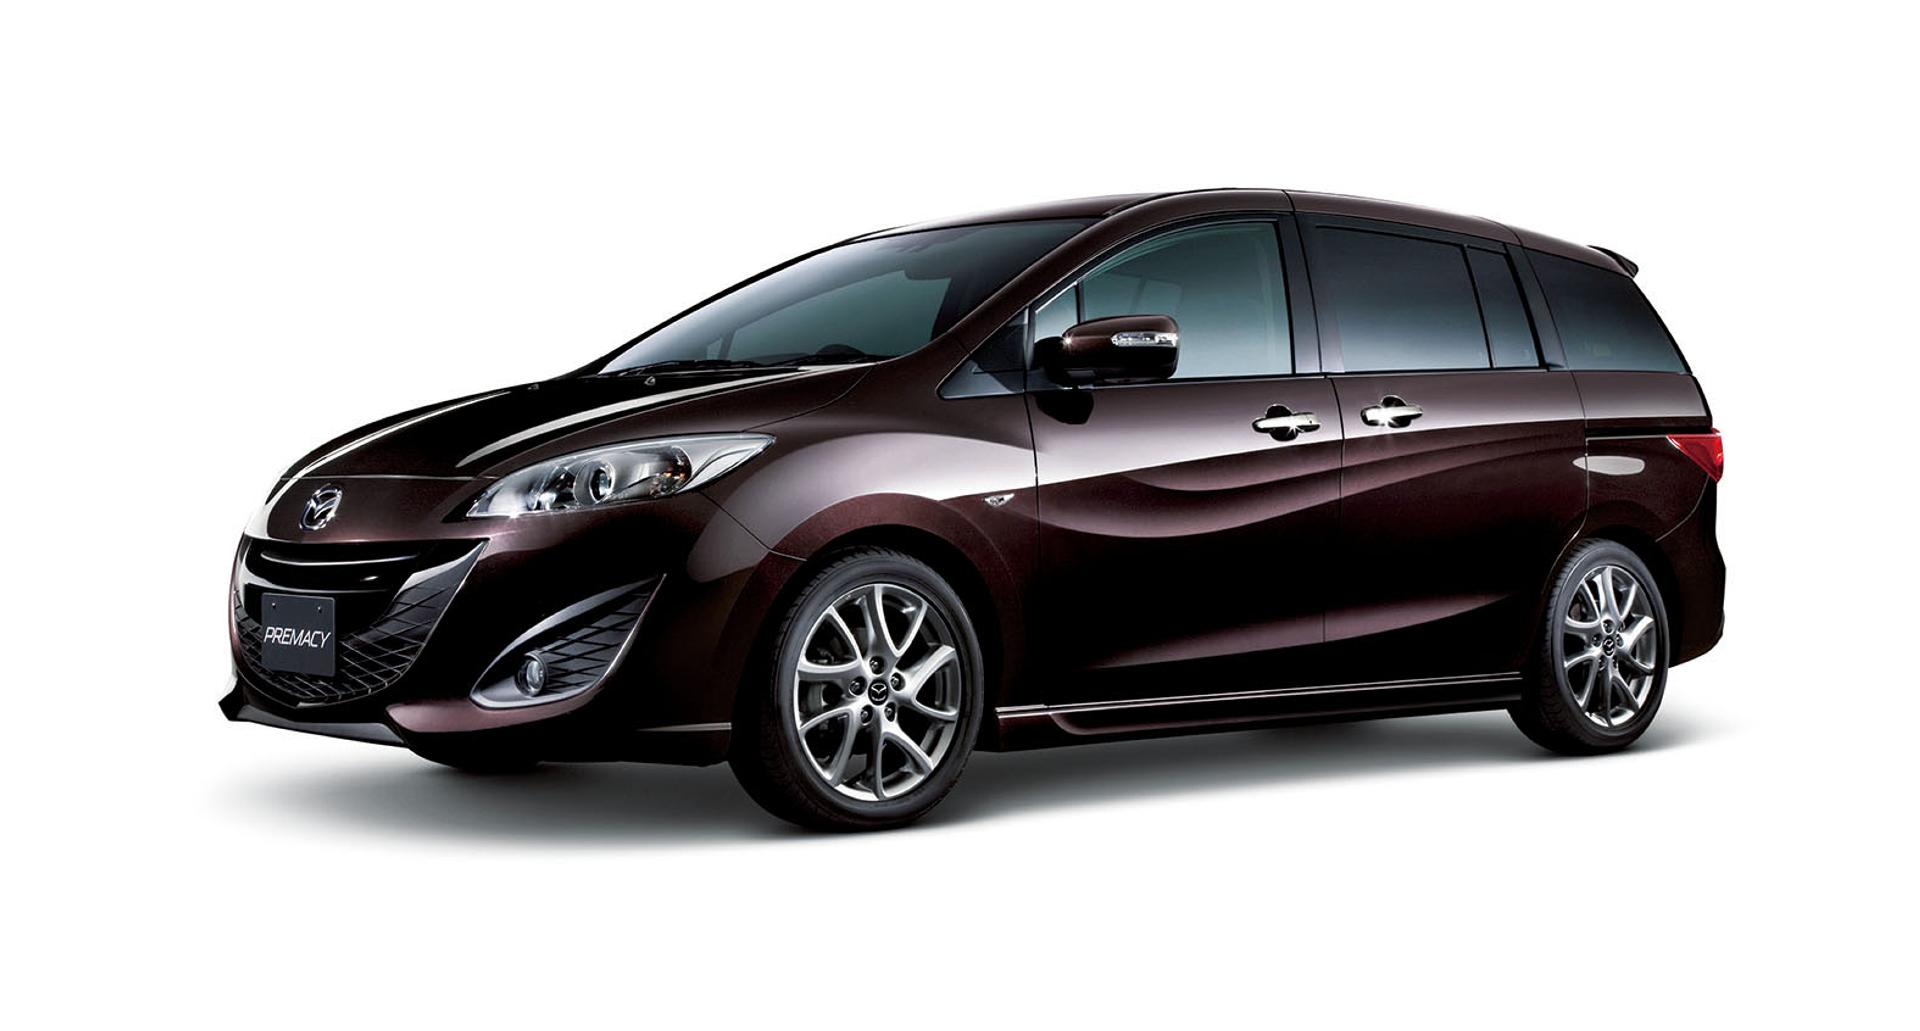 2012 mazda premacy 20s prestige style news and information. Black Bedroom Furniture Sets. Home Design Ideas